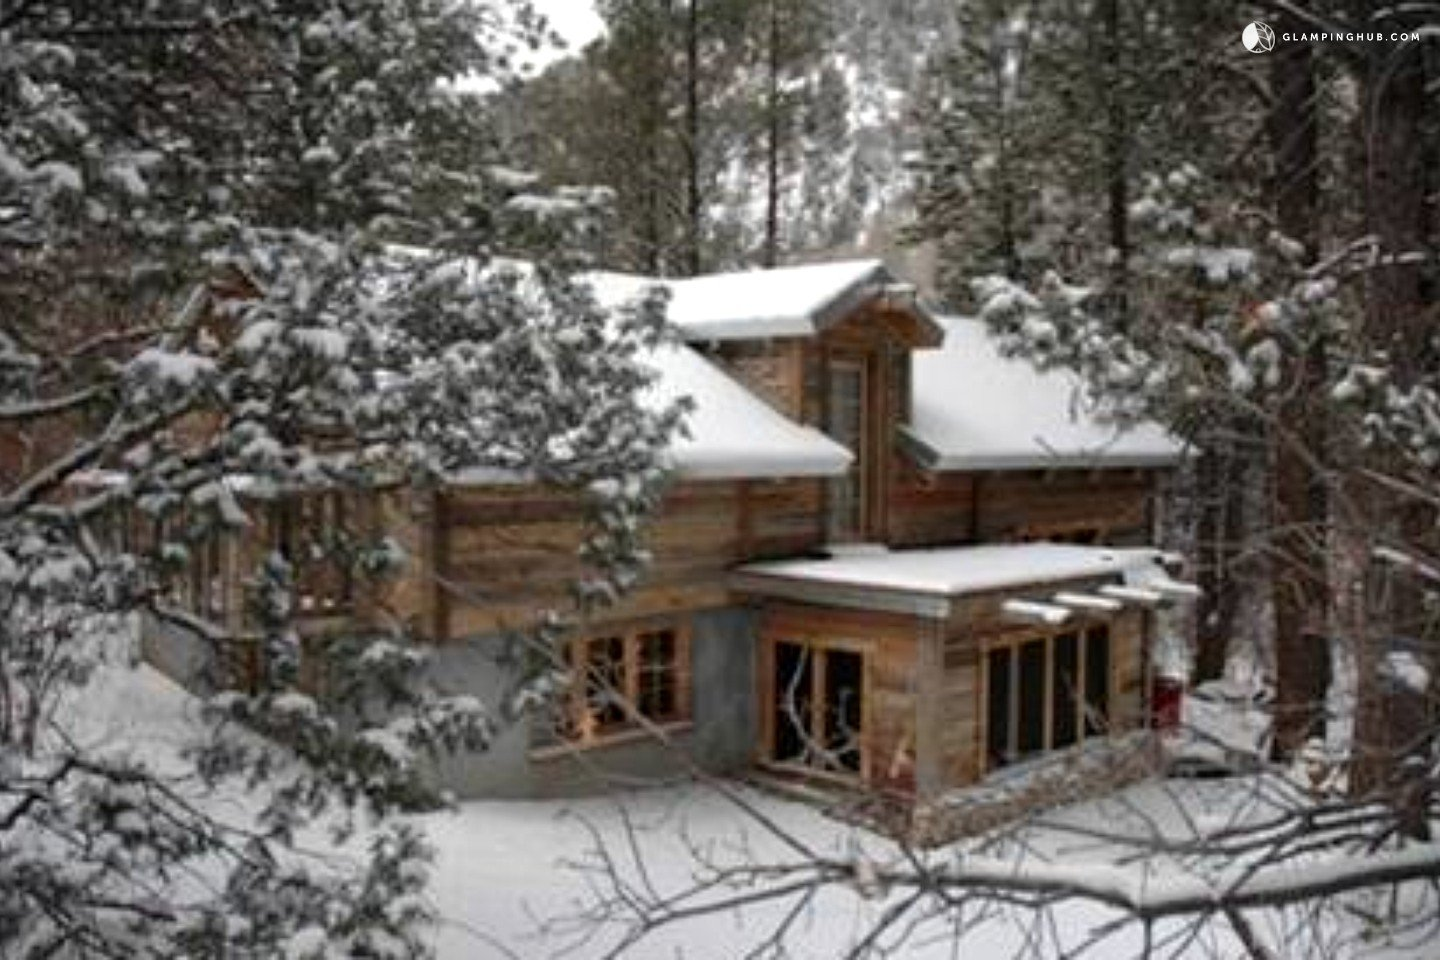 Log cabin rental near santa fe new mexico for Santa fe new mexico cabin rentals